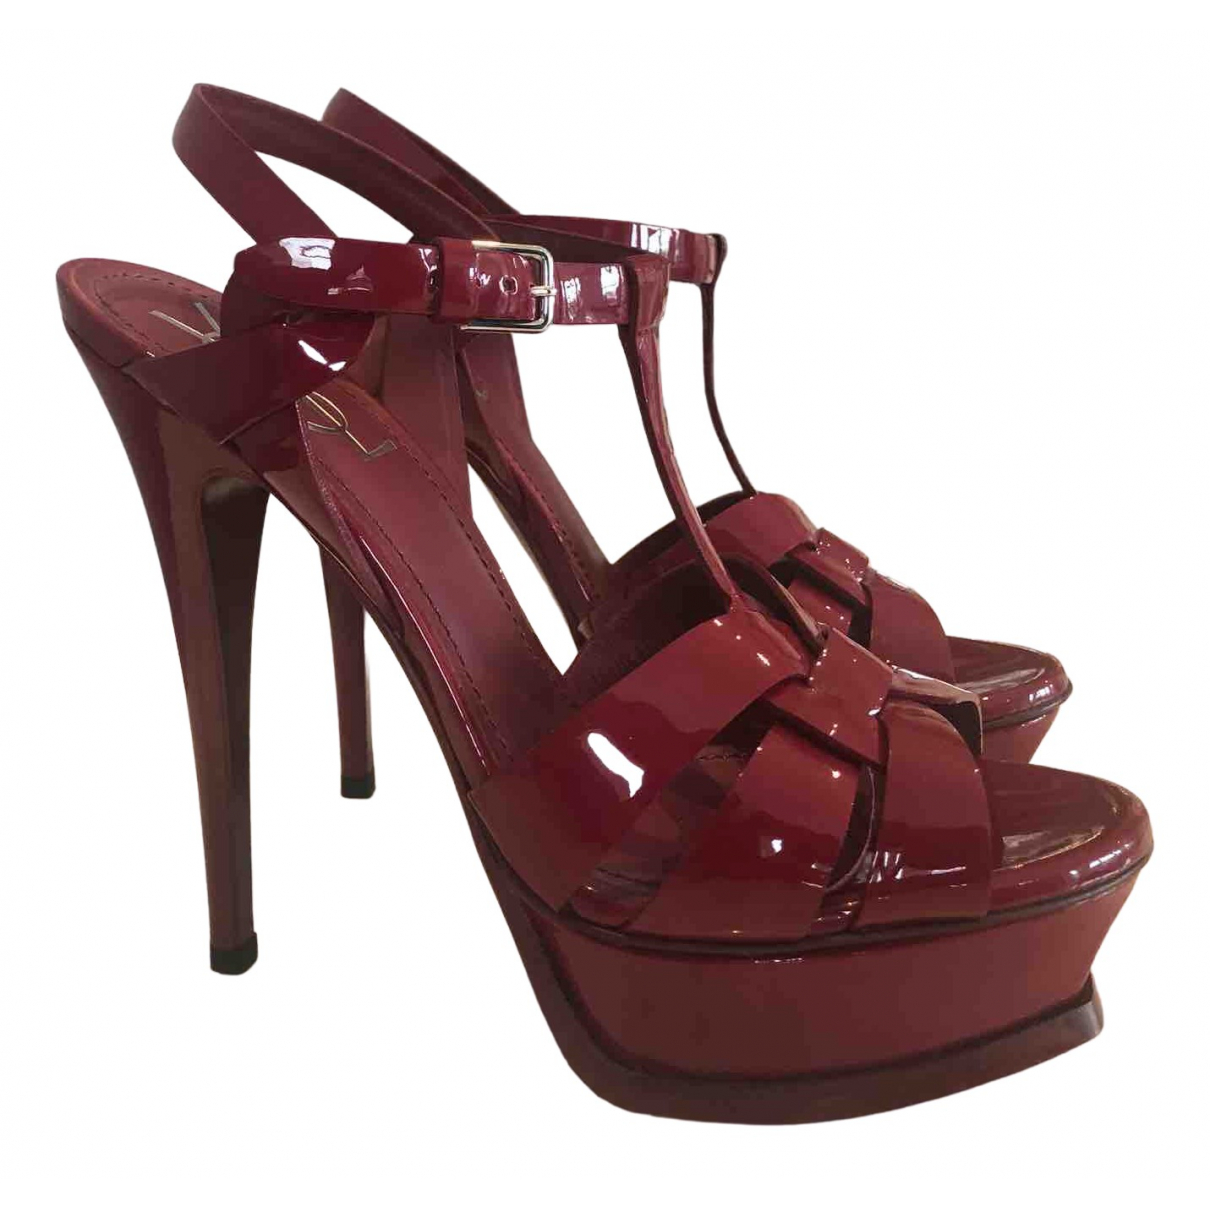 Yves Saint Laurent Tribute Red Patent leather Sandals for Women 37.5 EU